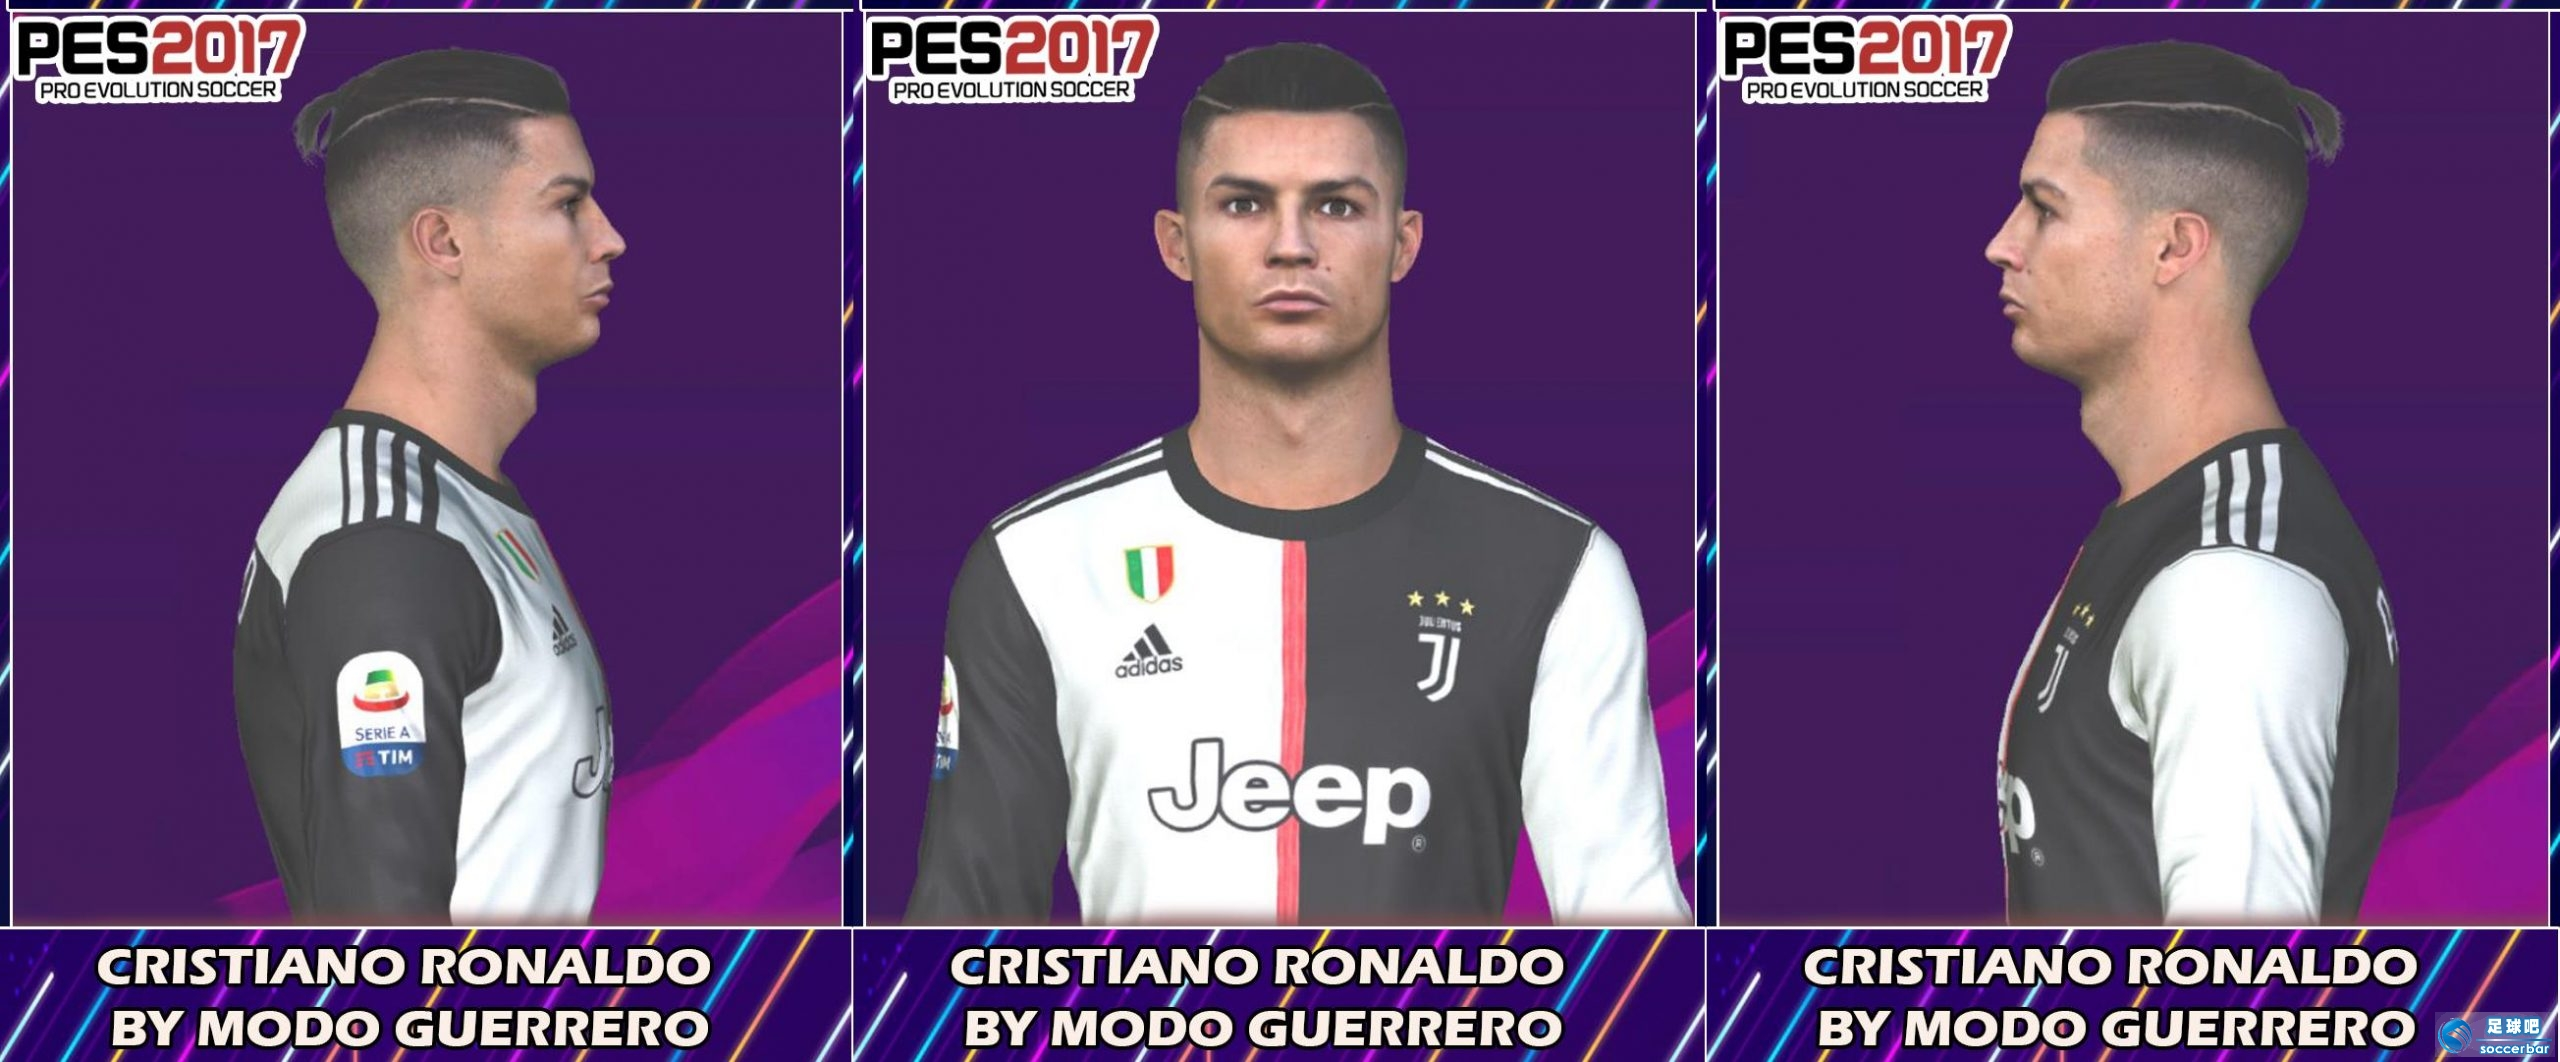 Ronaldo-March-2020-Face-PES17-scaled.jpg